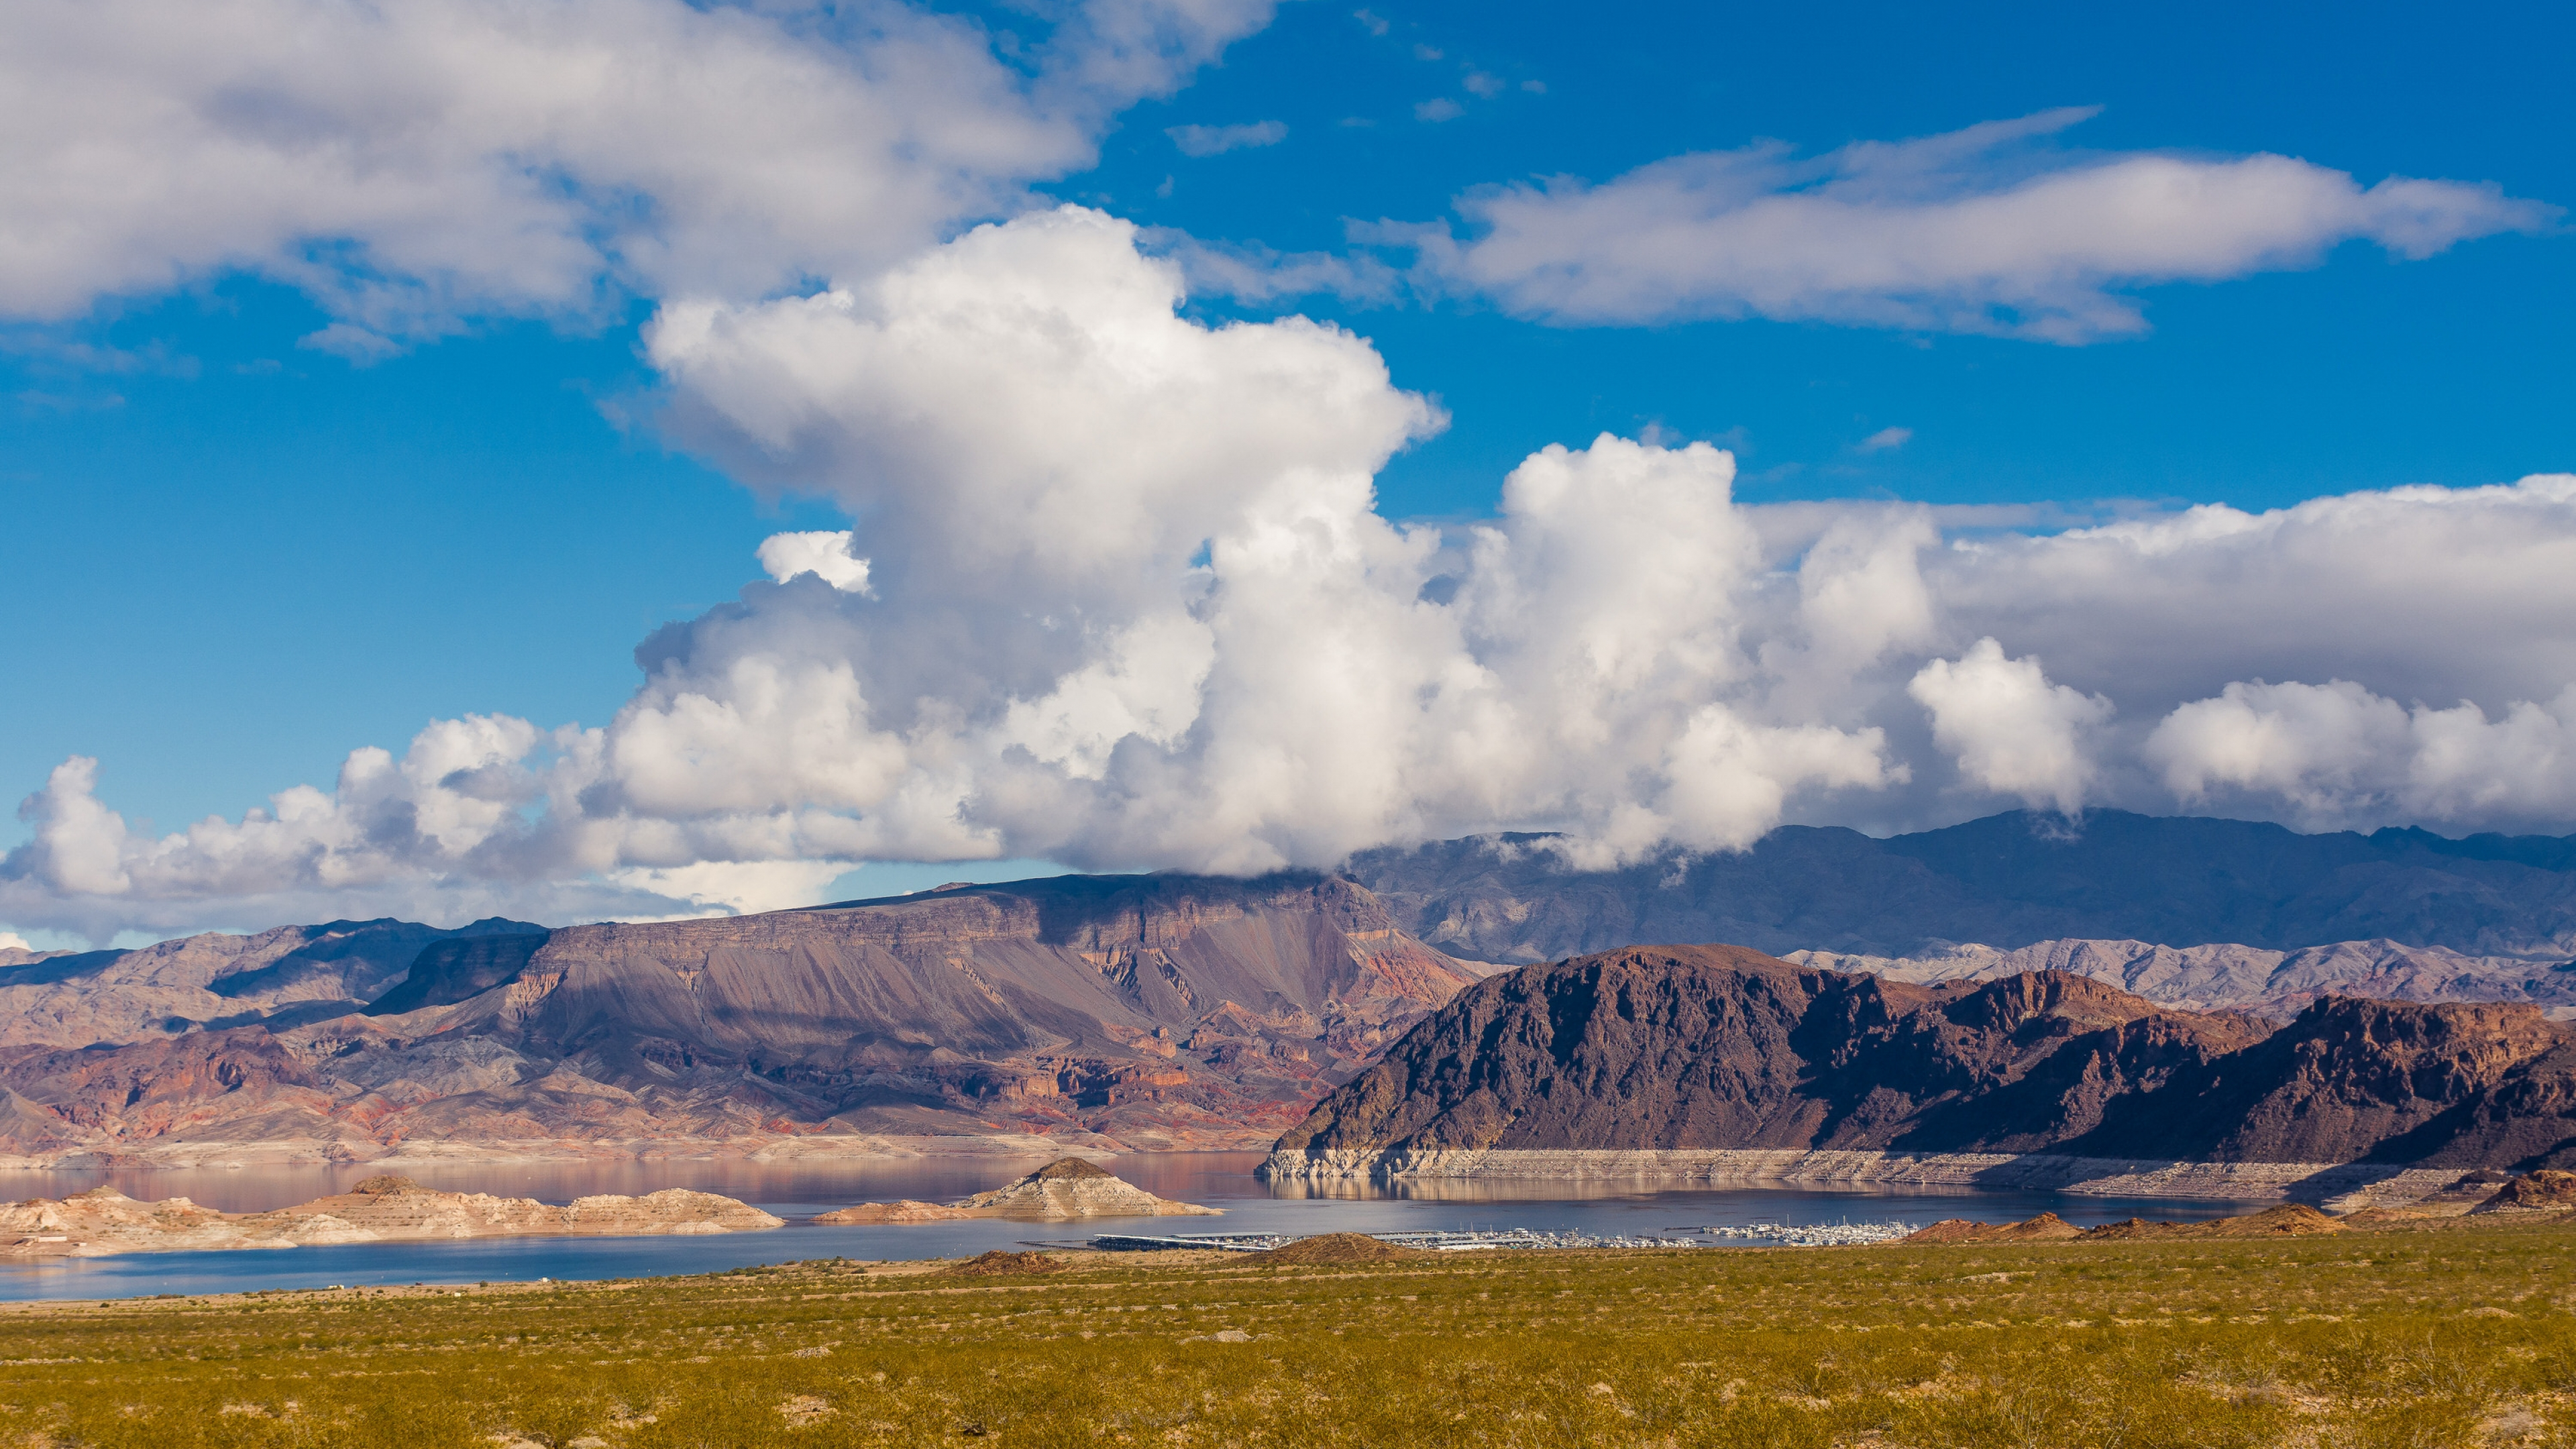 White clouds in blue sky over the red rock mountains of the Boulder Basin at Lake Mead National Recreation Area